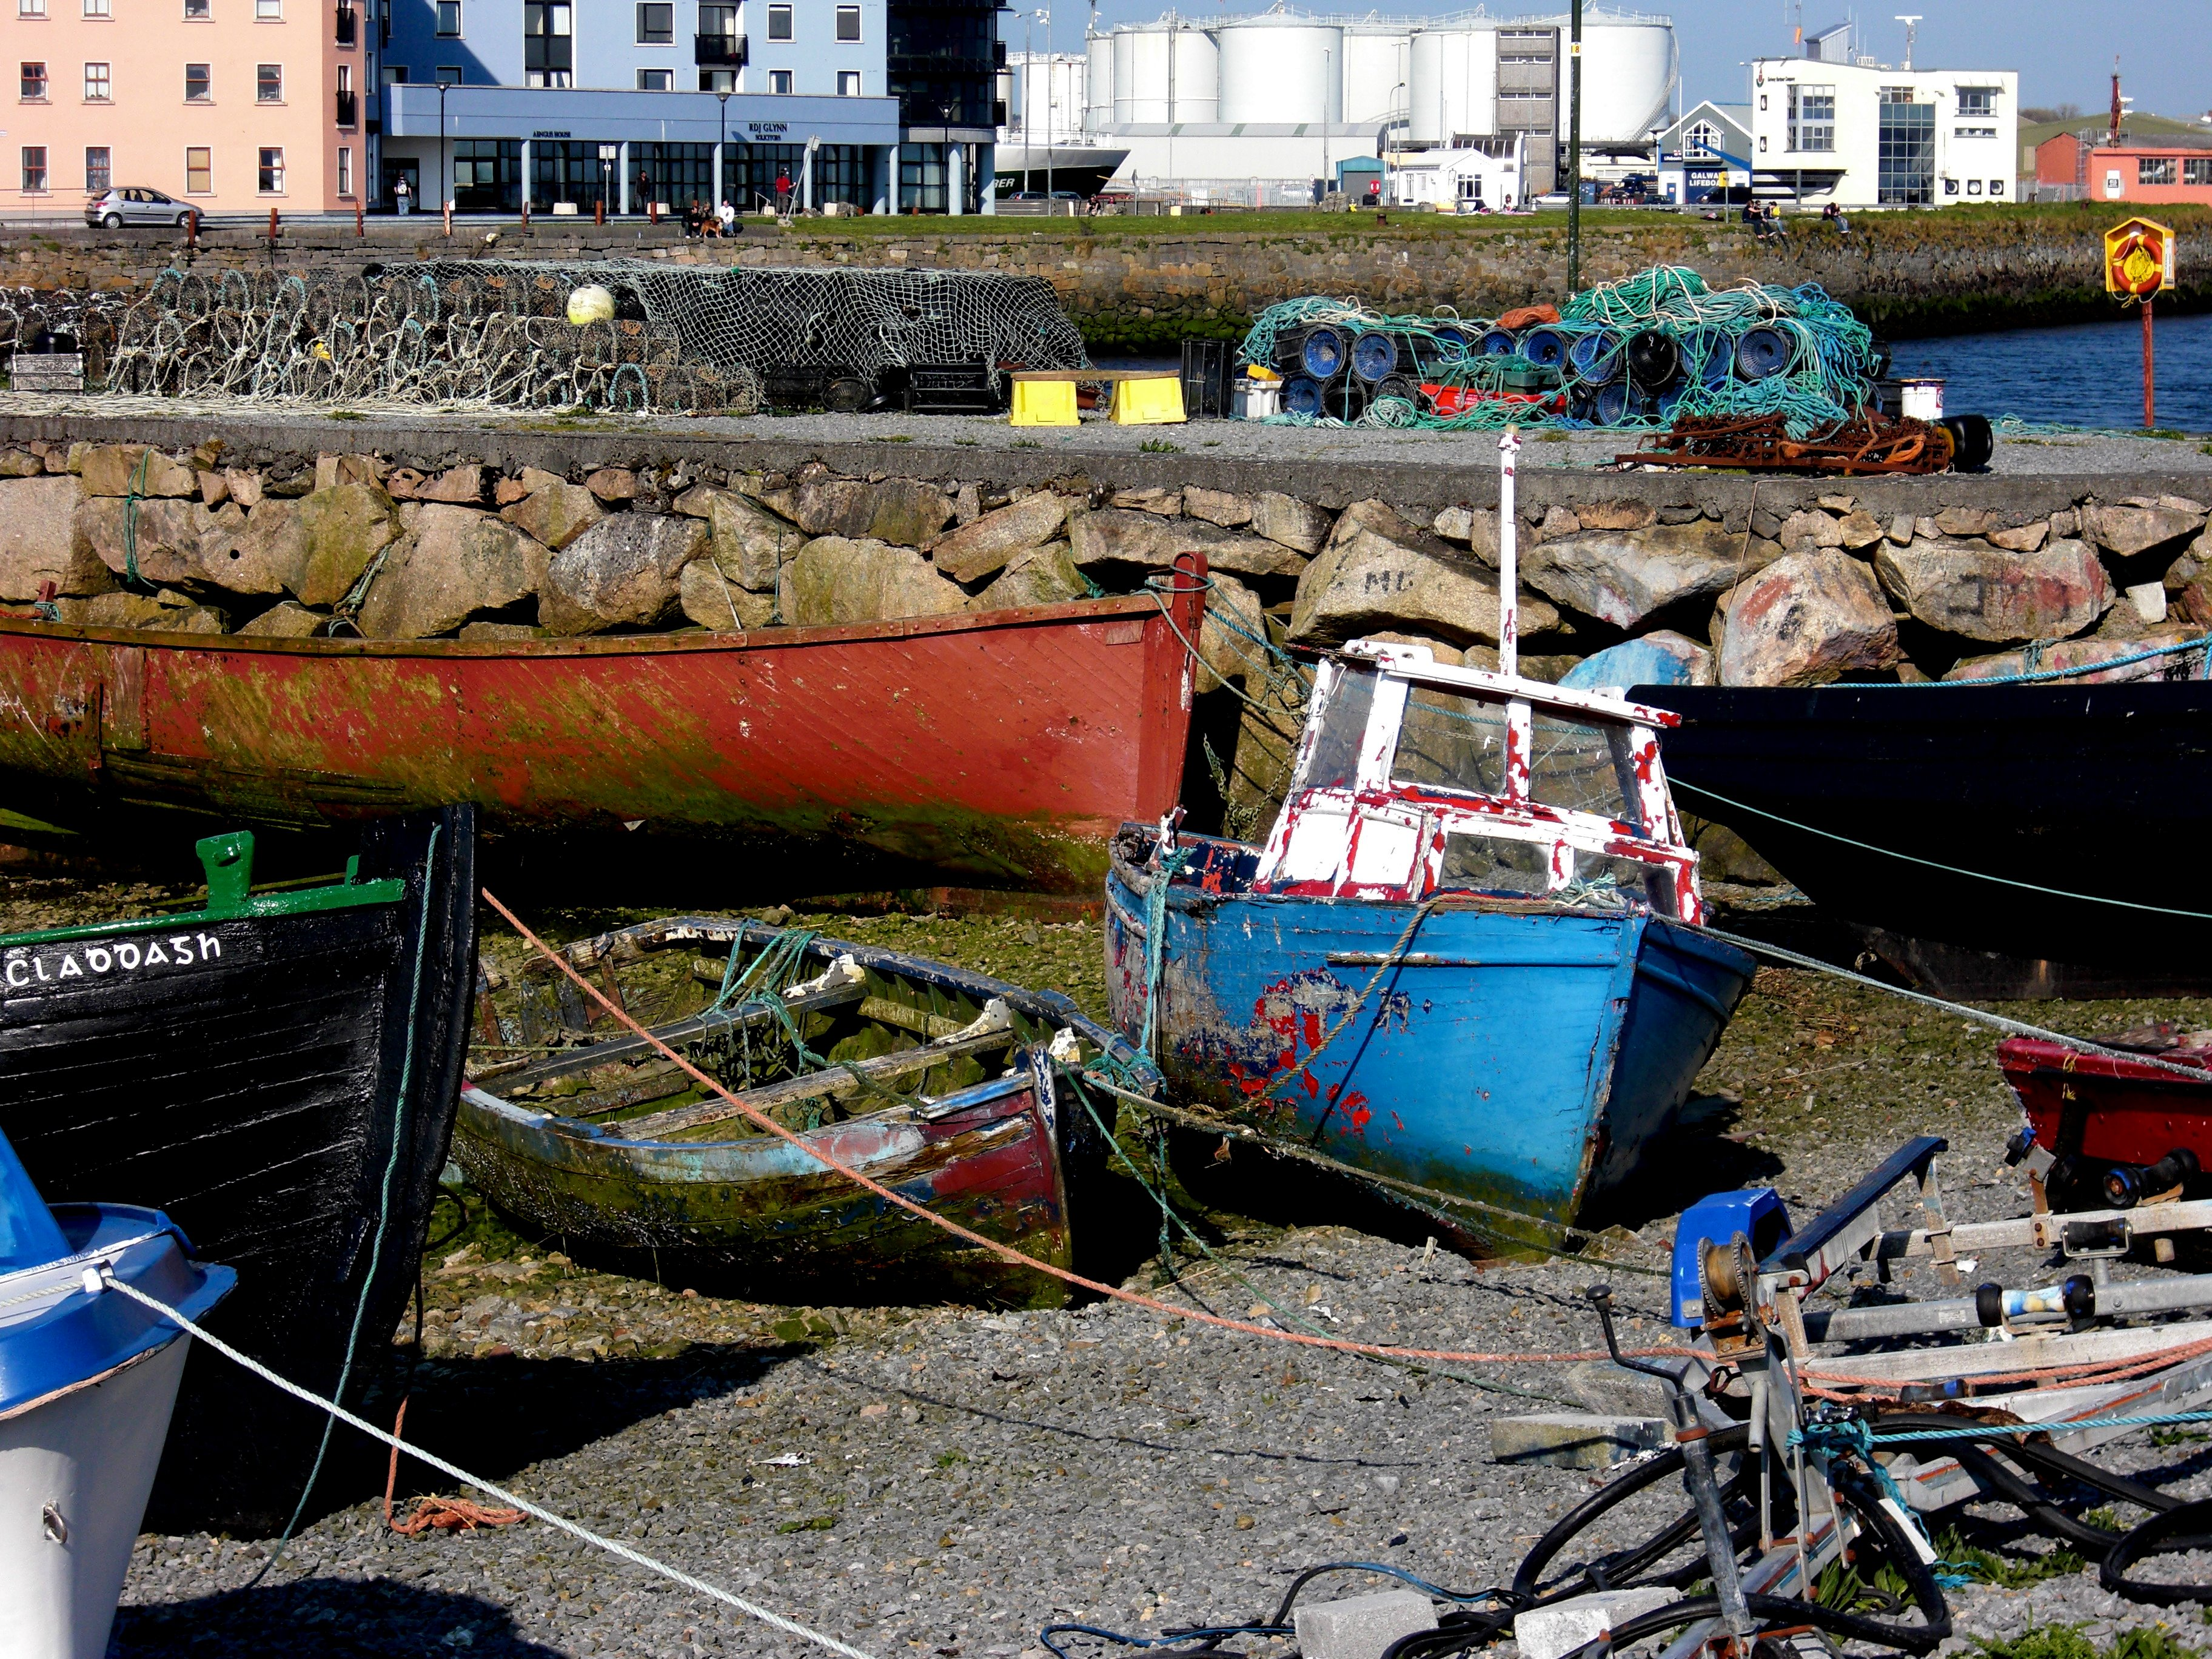 Galway Shipwrecks, Boat, Dock, Dry, Galway, HQ Photo